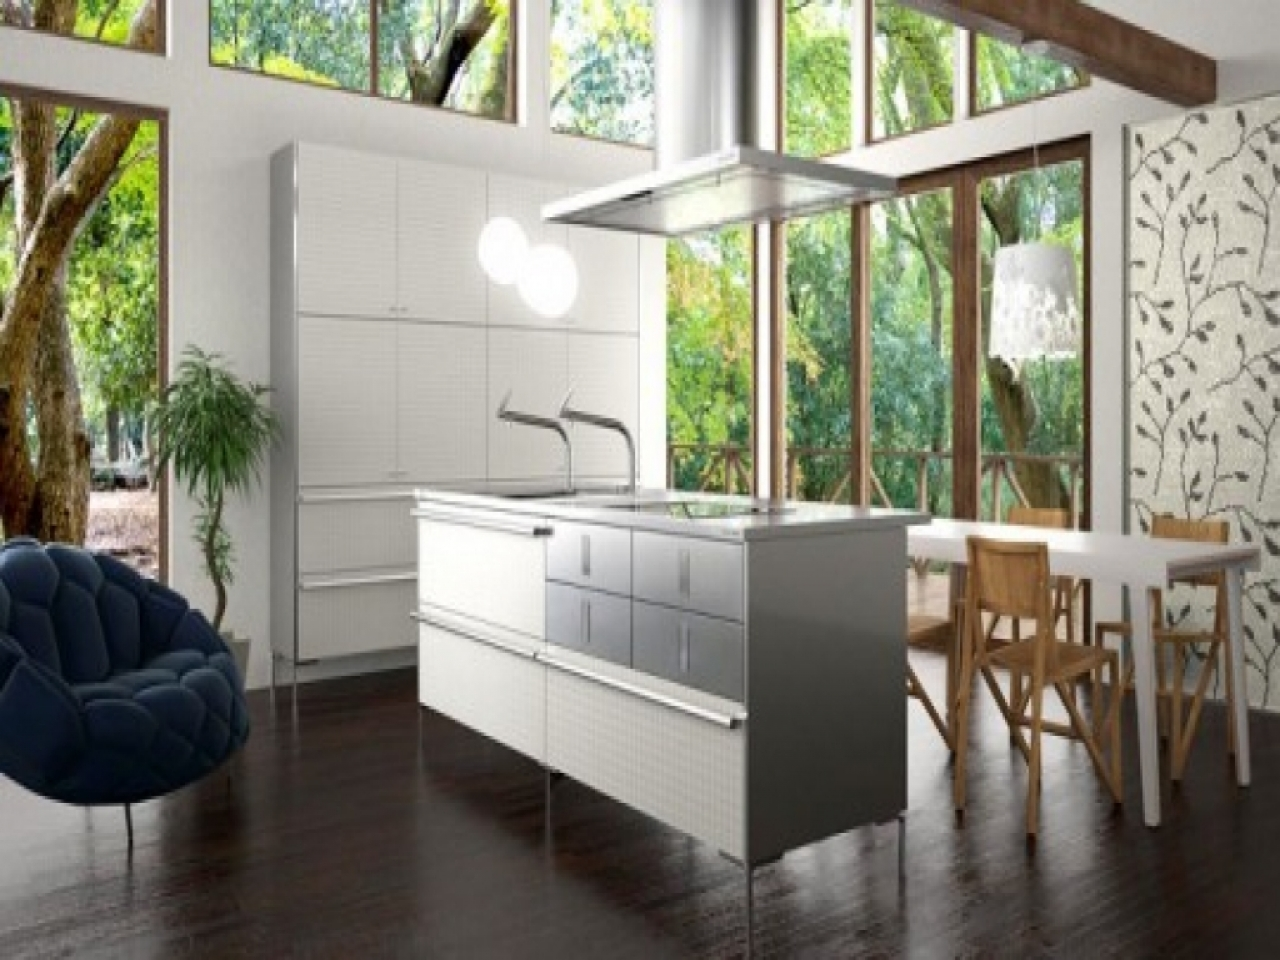 Japanese traditional design kitchen modern japanese for Japanese traditional kitchen design